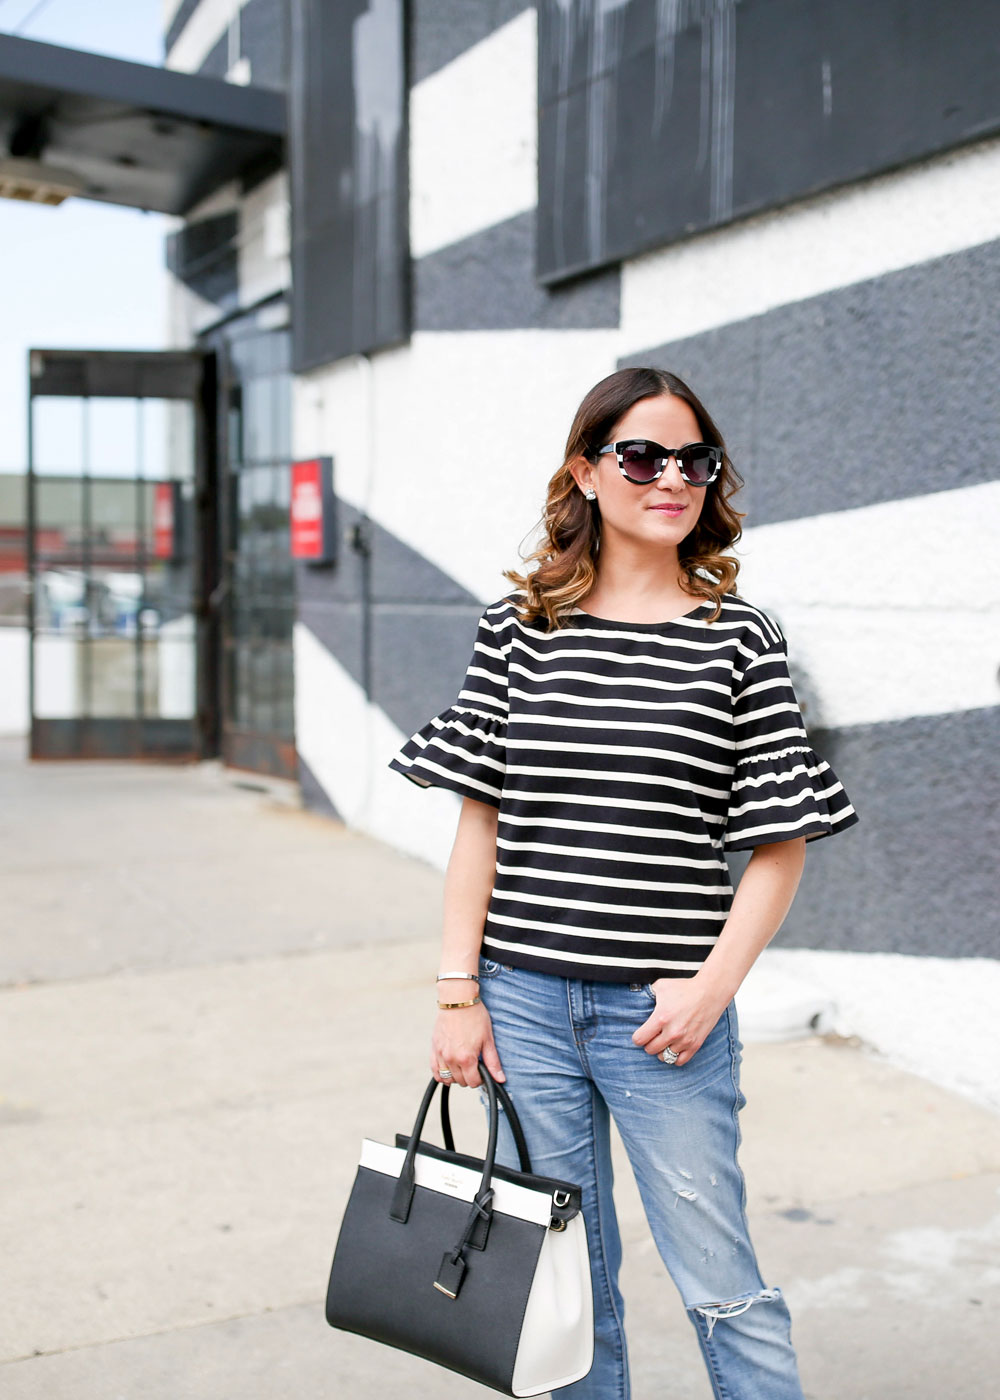 J. Crew Black White Striped Top